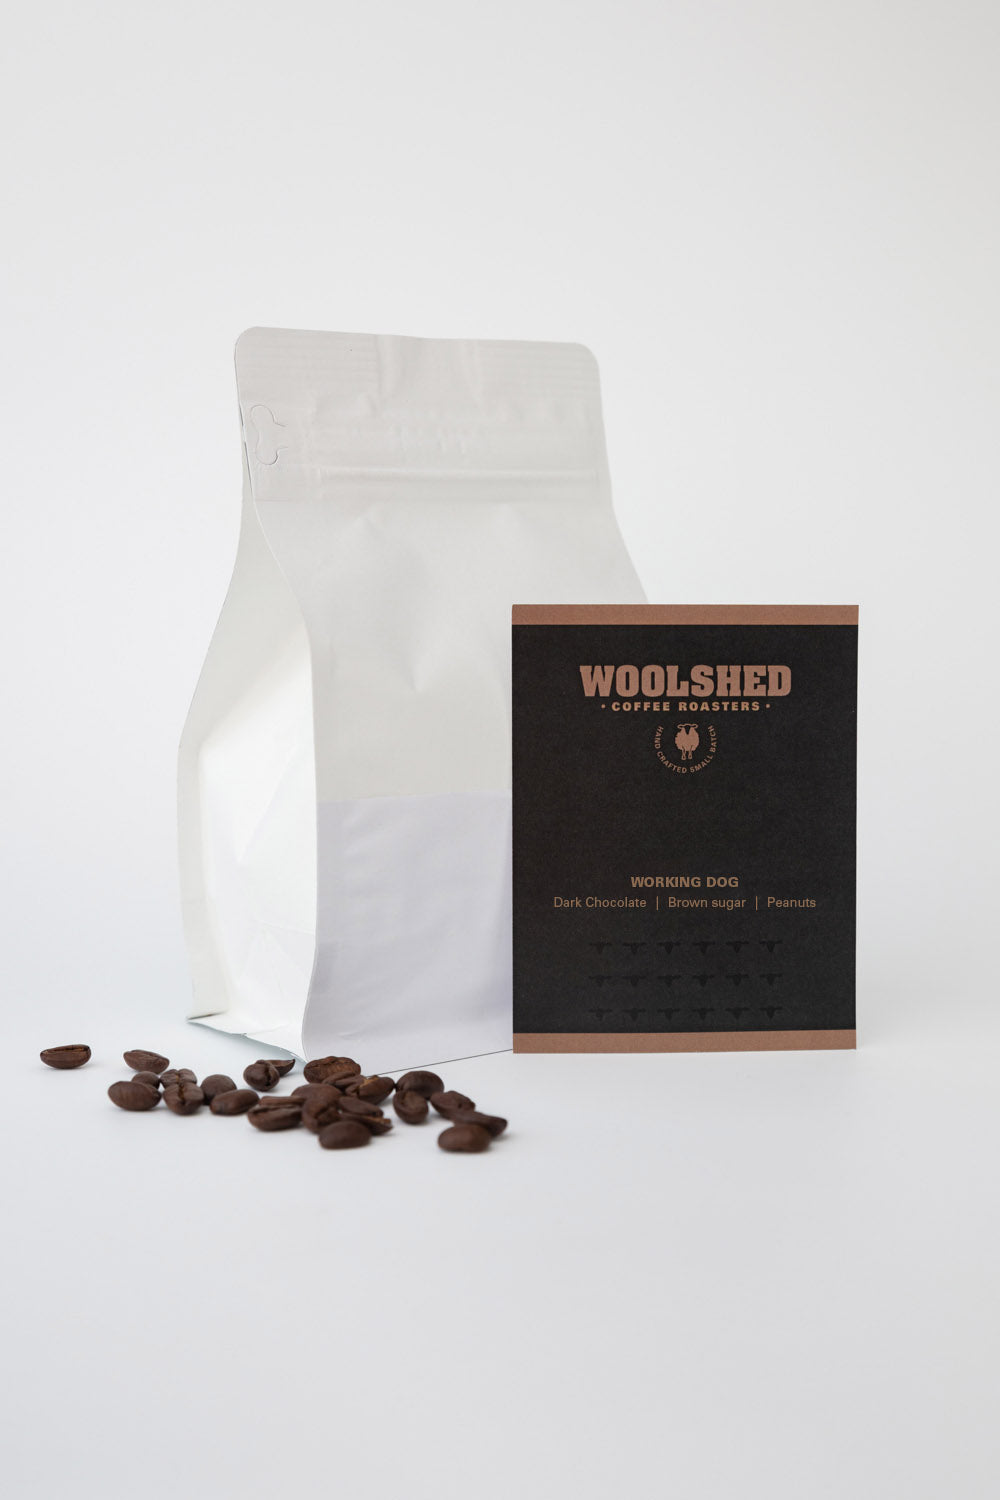 Woolshed - Working Dog - UTZ Certified Coffee Beans | BlendCo Australia - Beyond the Cup | Coffee | Tea | Machinery